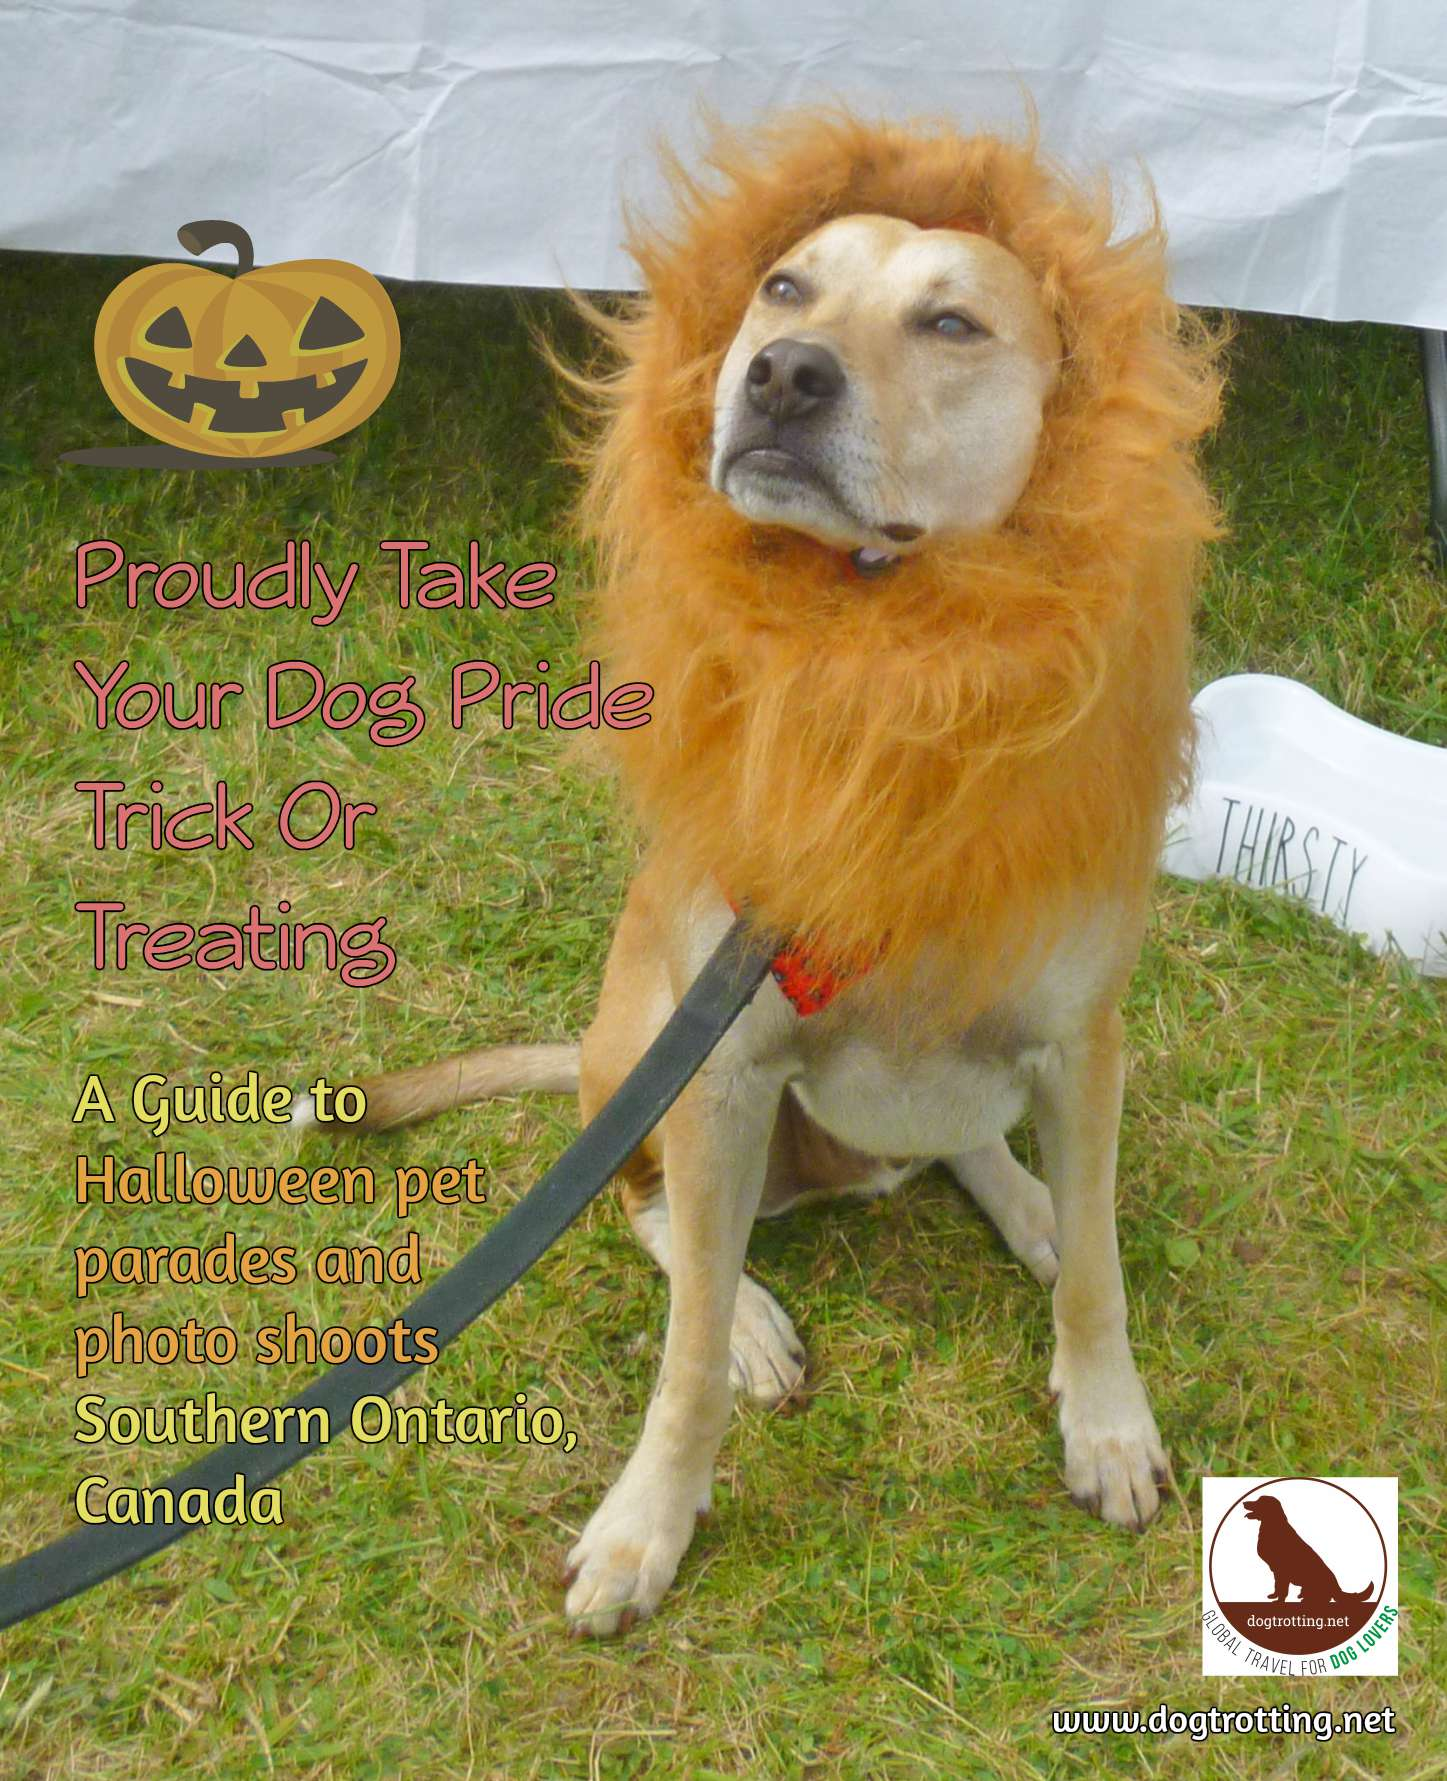 Dress up the Dog! Halloween 18 Pet Events in Southern Ontario 2019